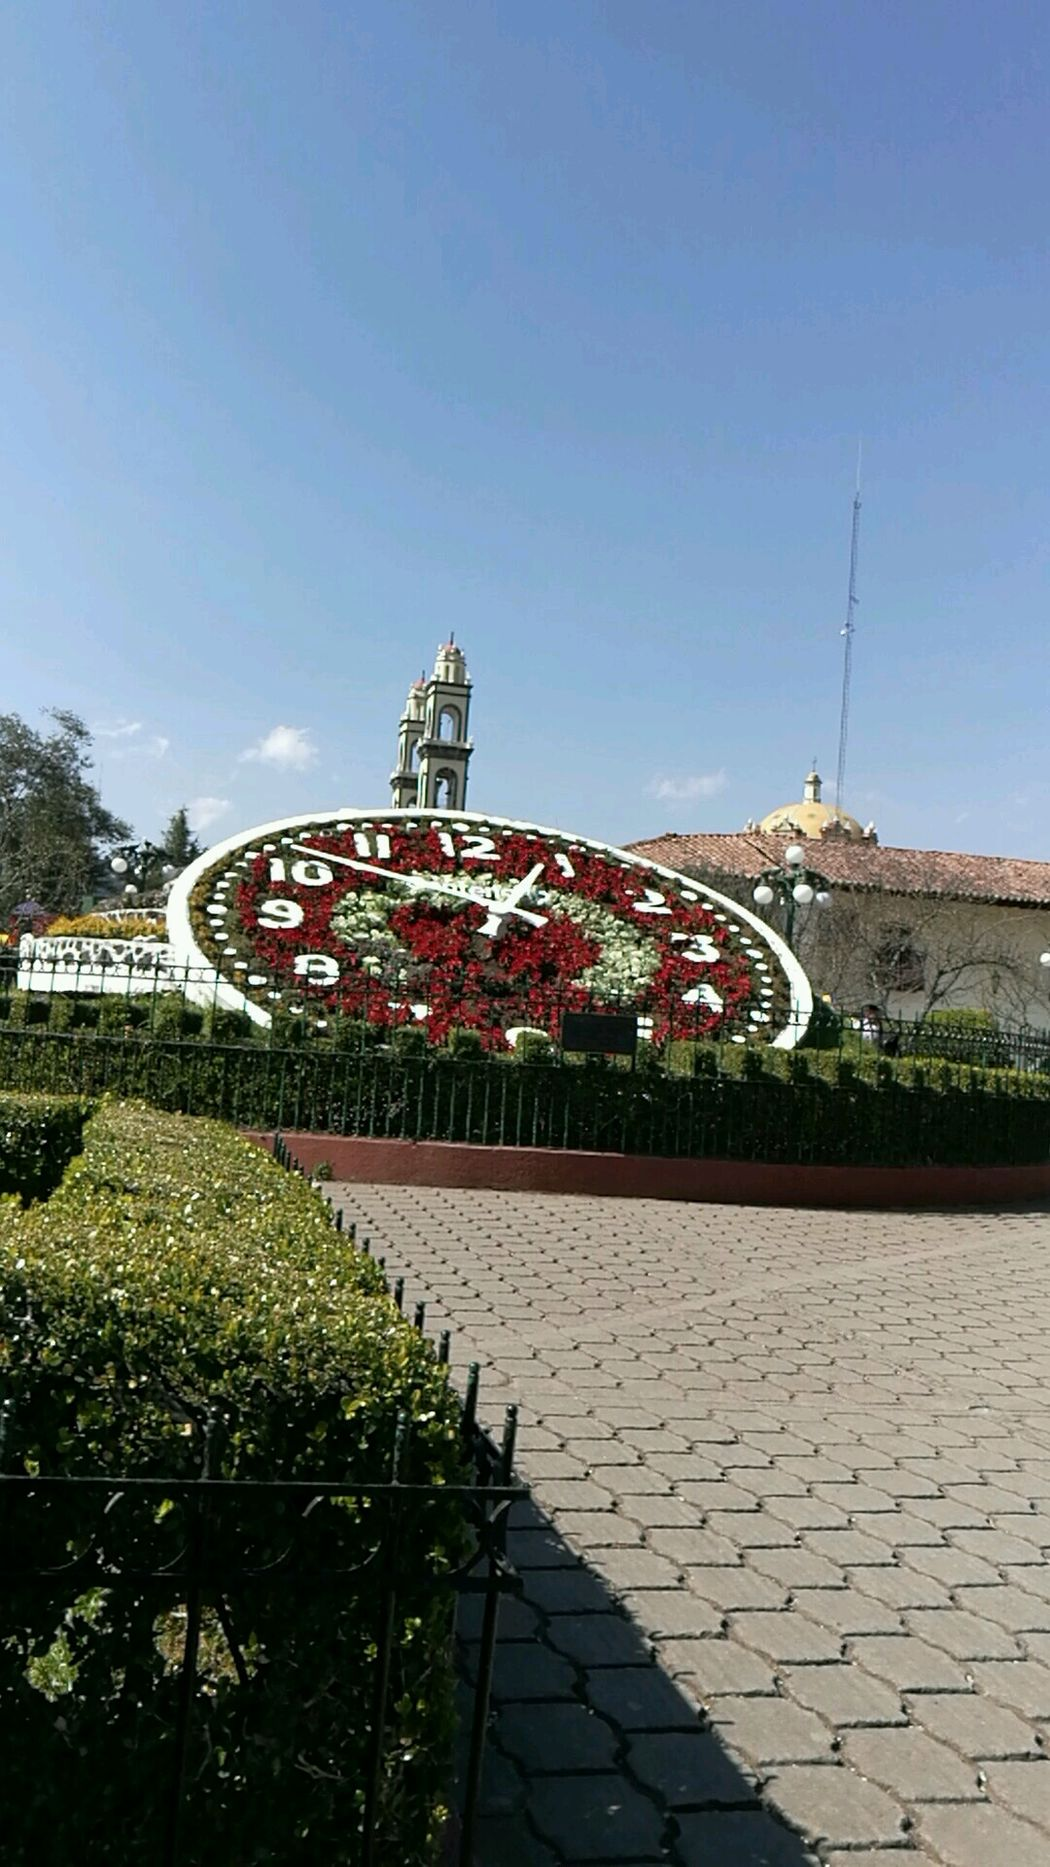 Travel Destinations City Outdoors Sky No People Day Amusement Park Architecture Cityscape Track And Field Big Clock Zacatlán Puebla México